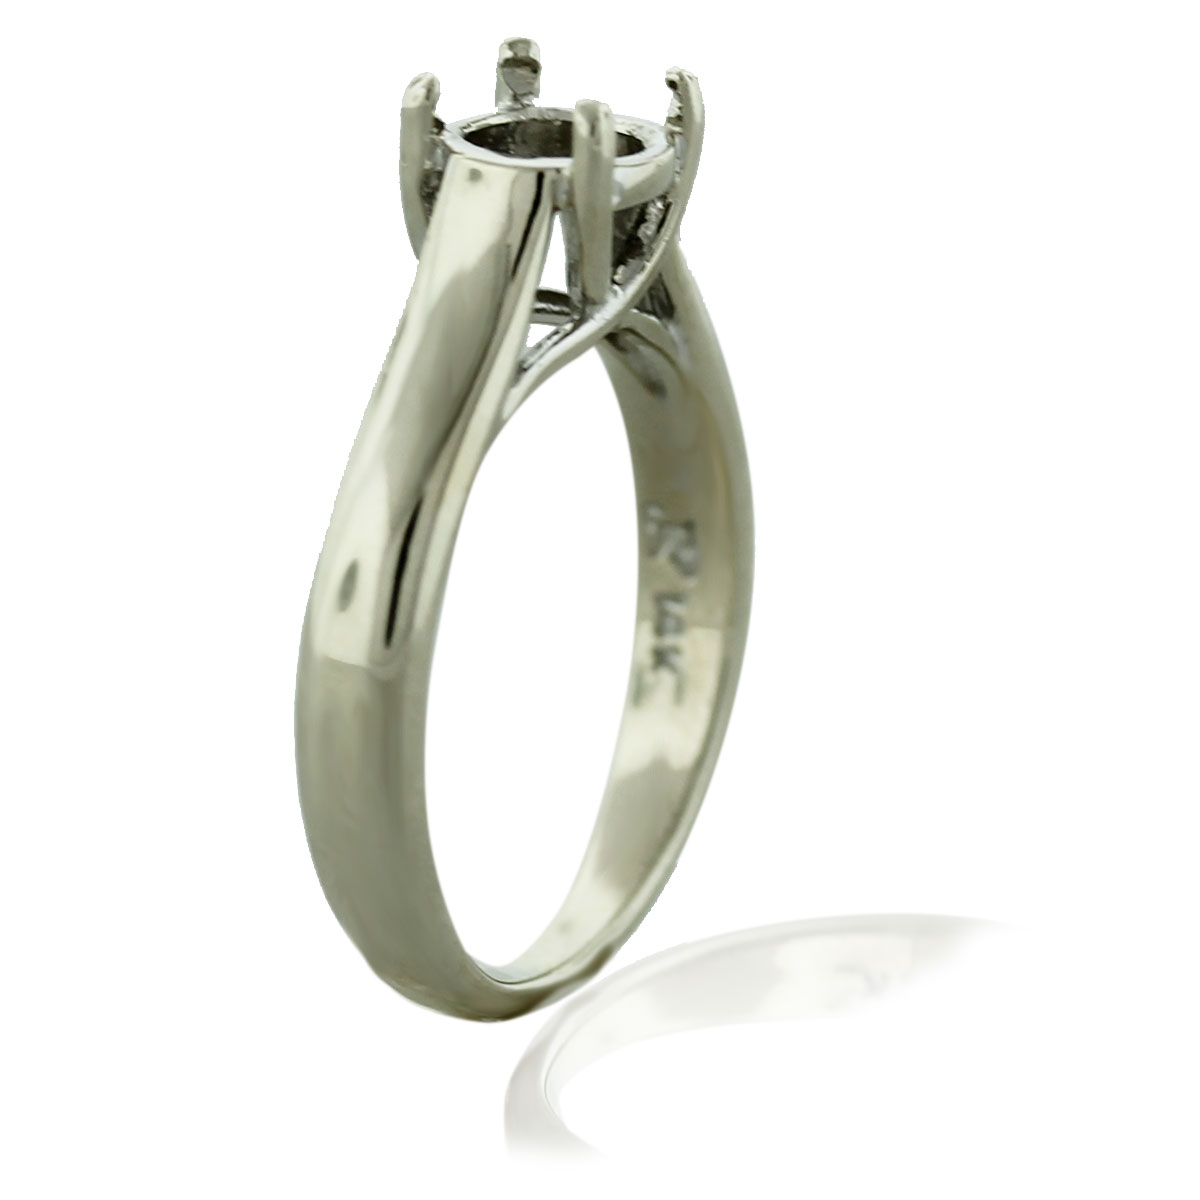 14k White Gold Solitaire 4 Prong Engagement Ring Mounting Boca Raton